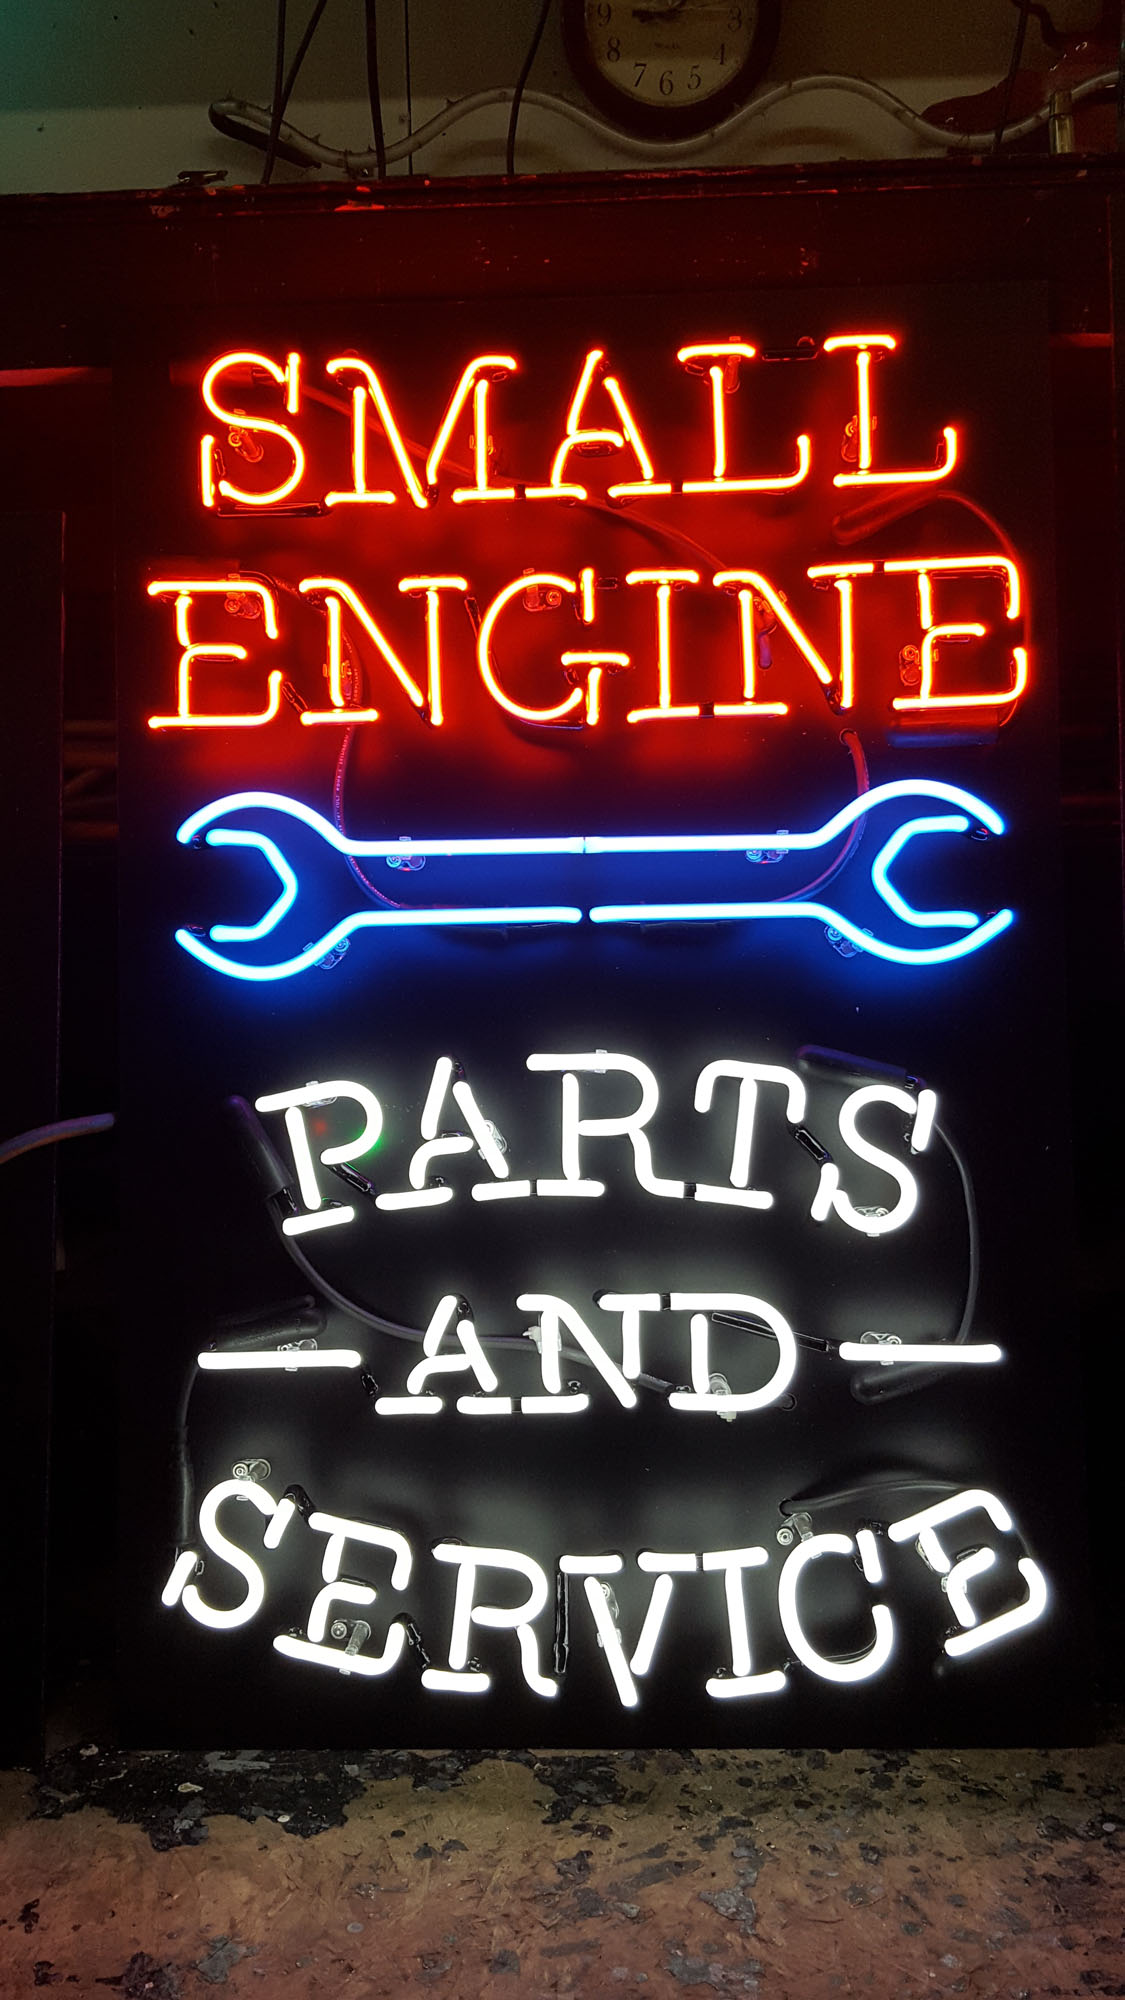 Small Engine Parts and Service Neon Sign by DeMars Signs